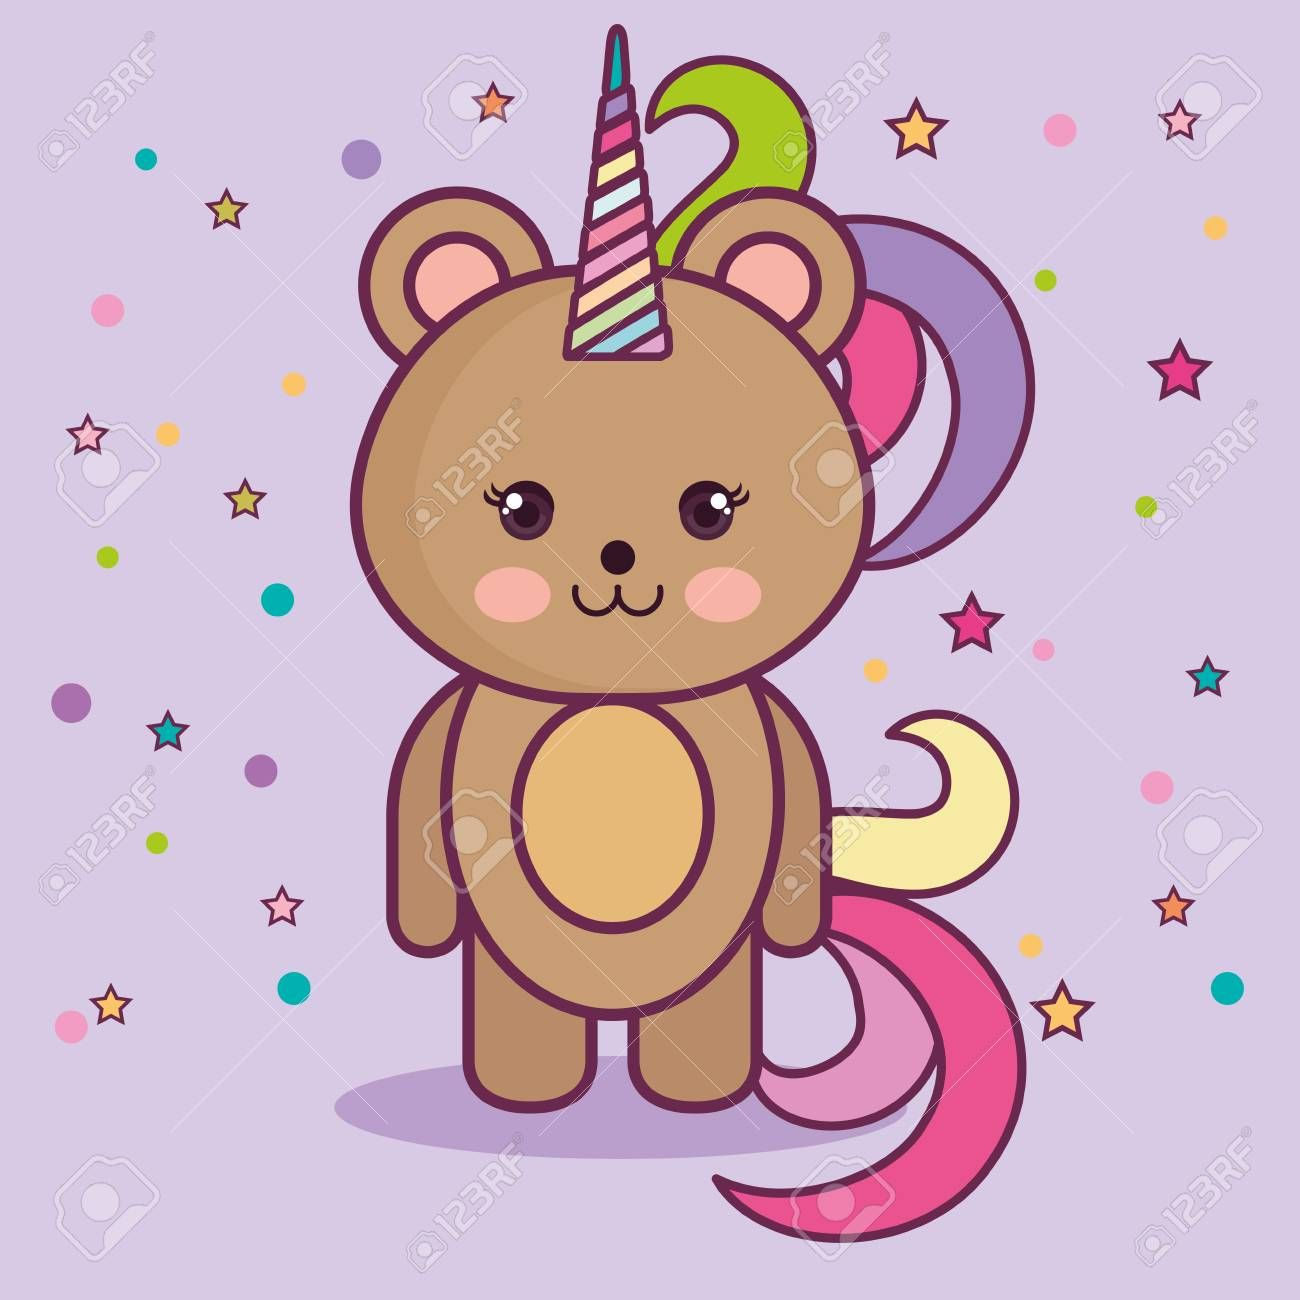 Kawaii bear with colorful horn over purple background. Vector illustration. ,